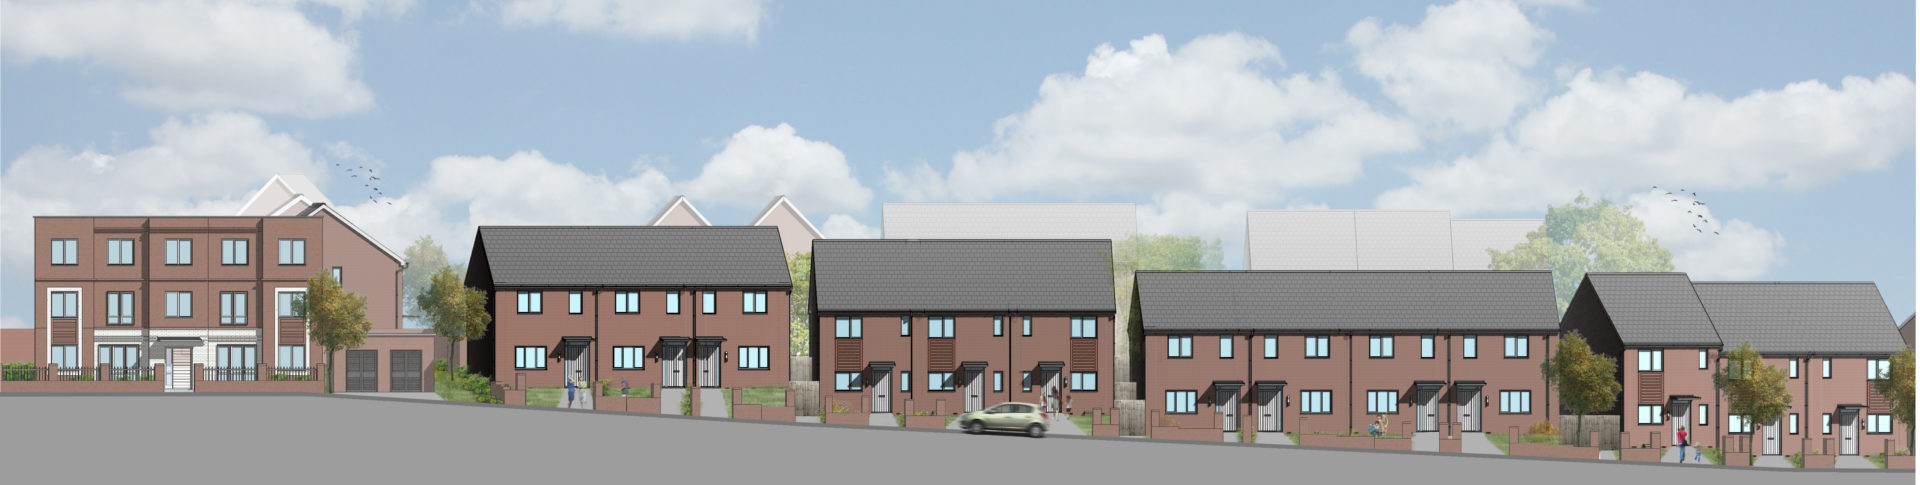 St. Modwen secures planning for new homes on former Royal Doulton site